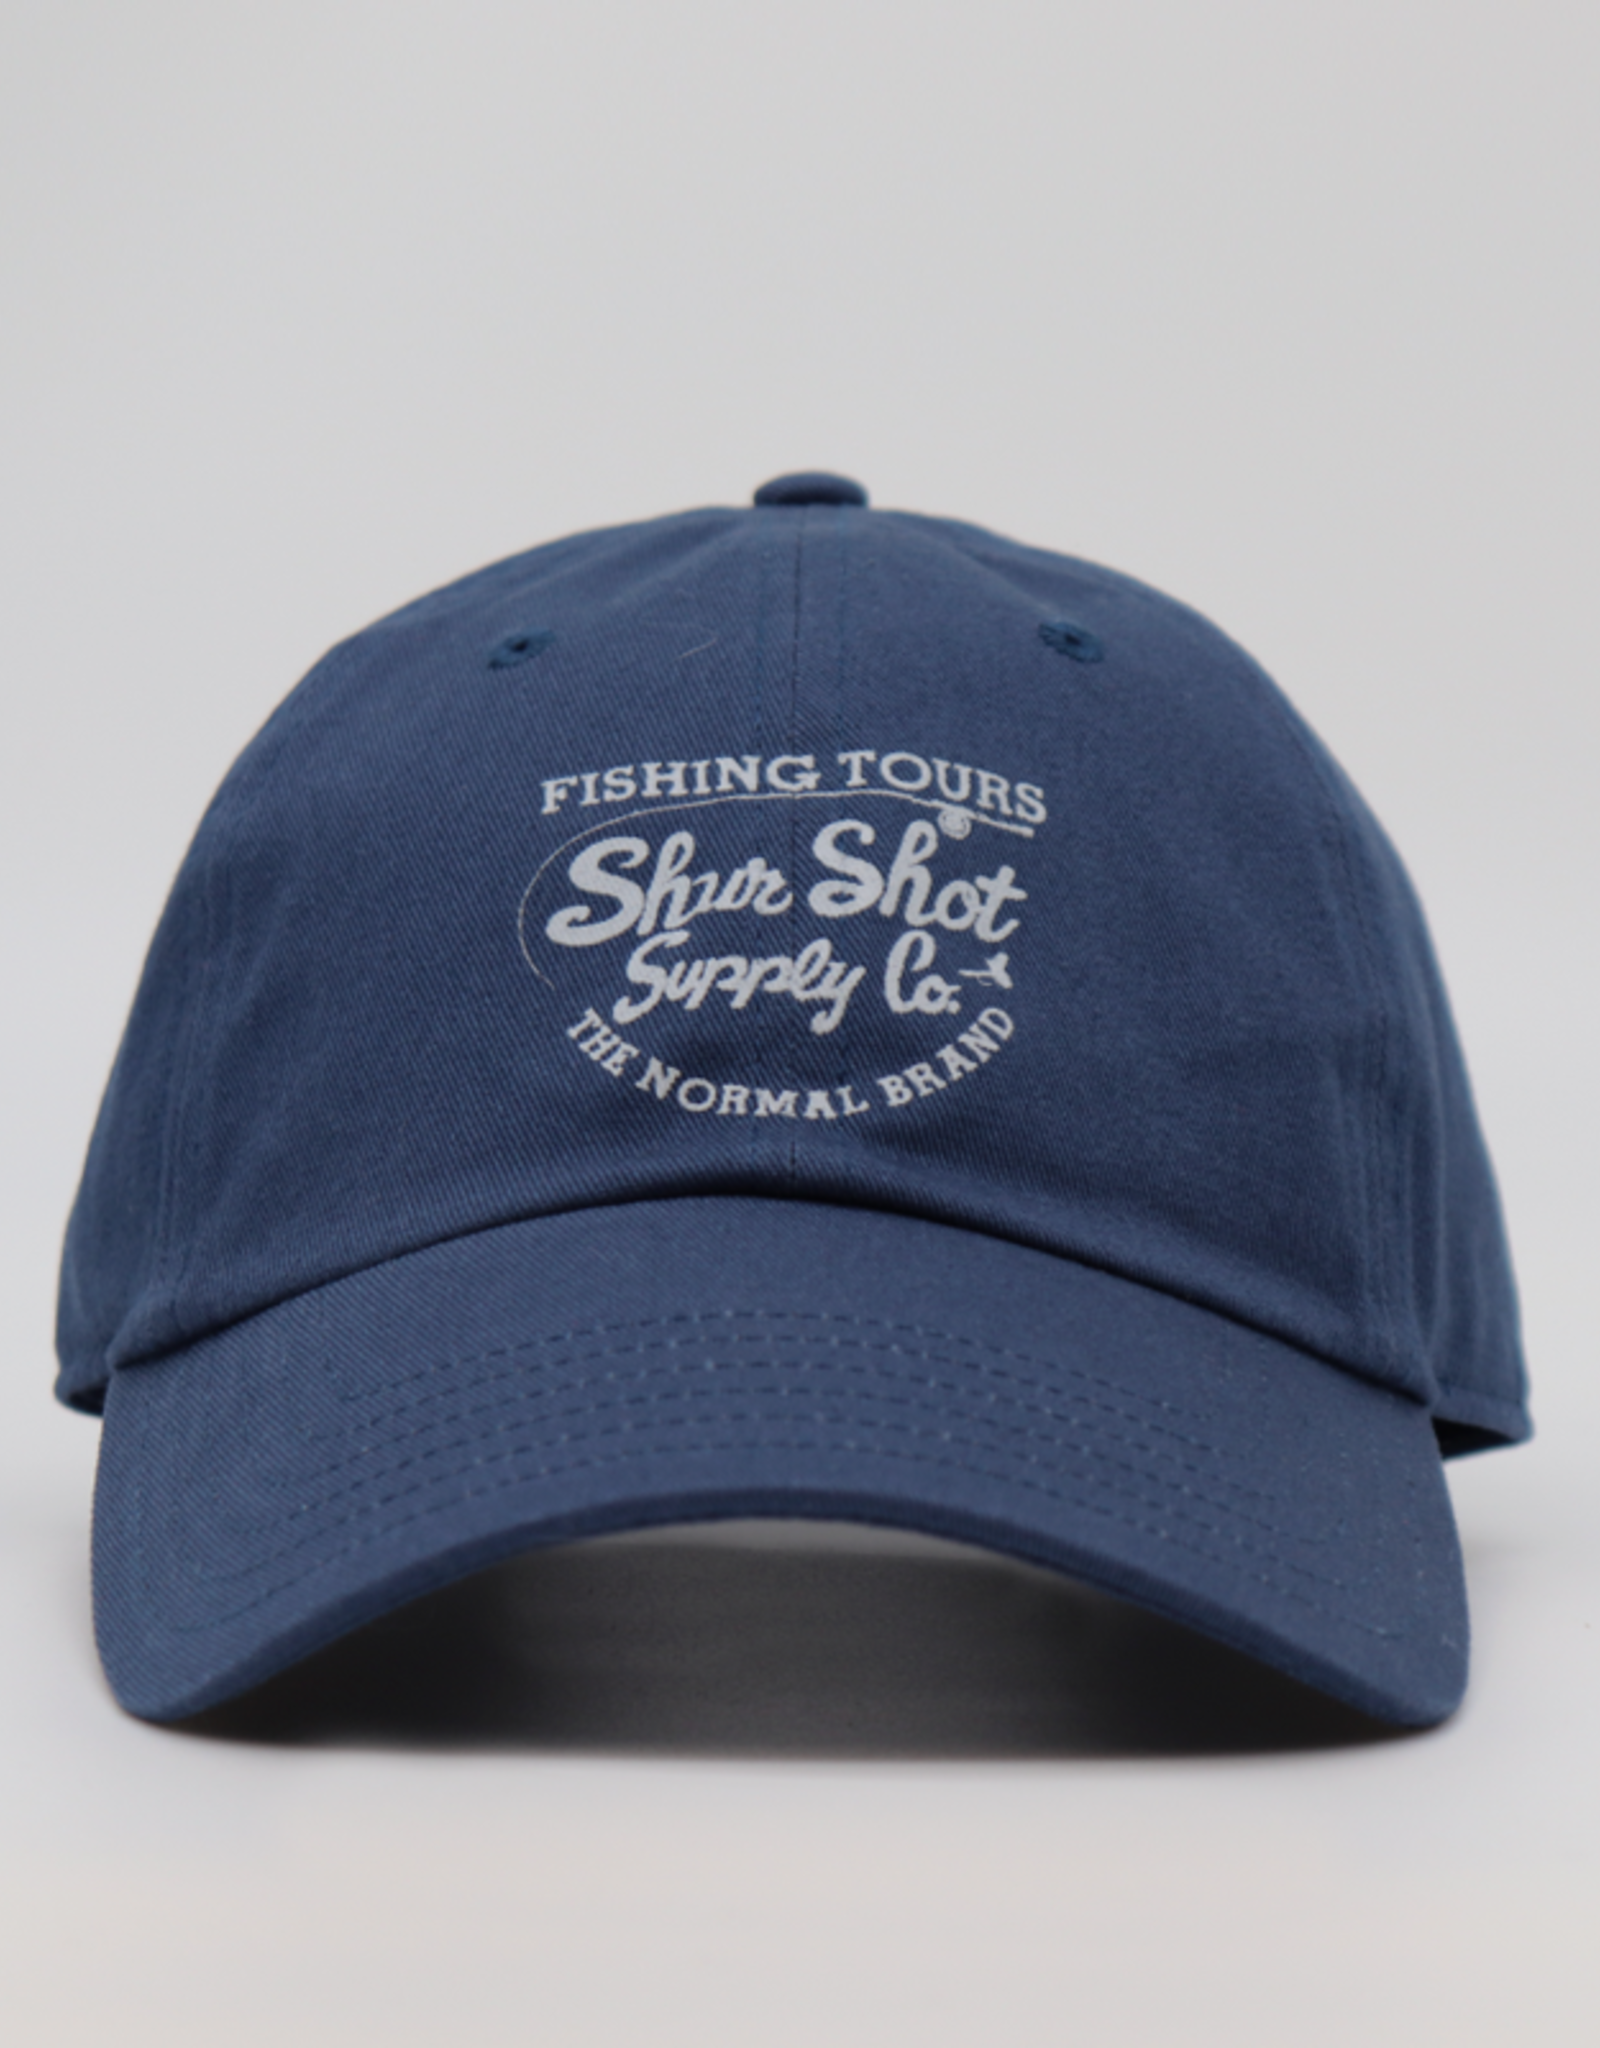 The Normal Brand Shurt Shot Dad Cap